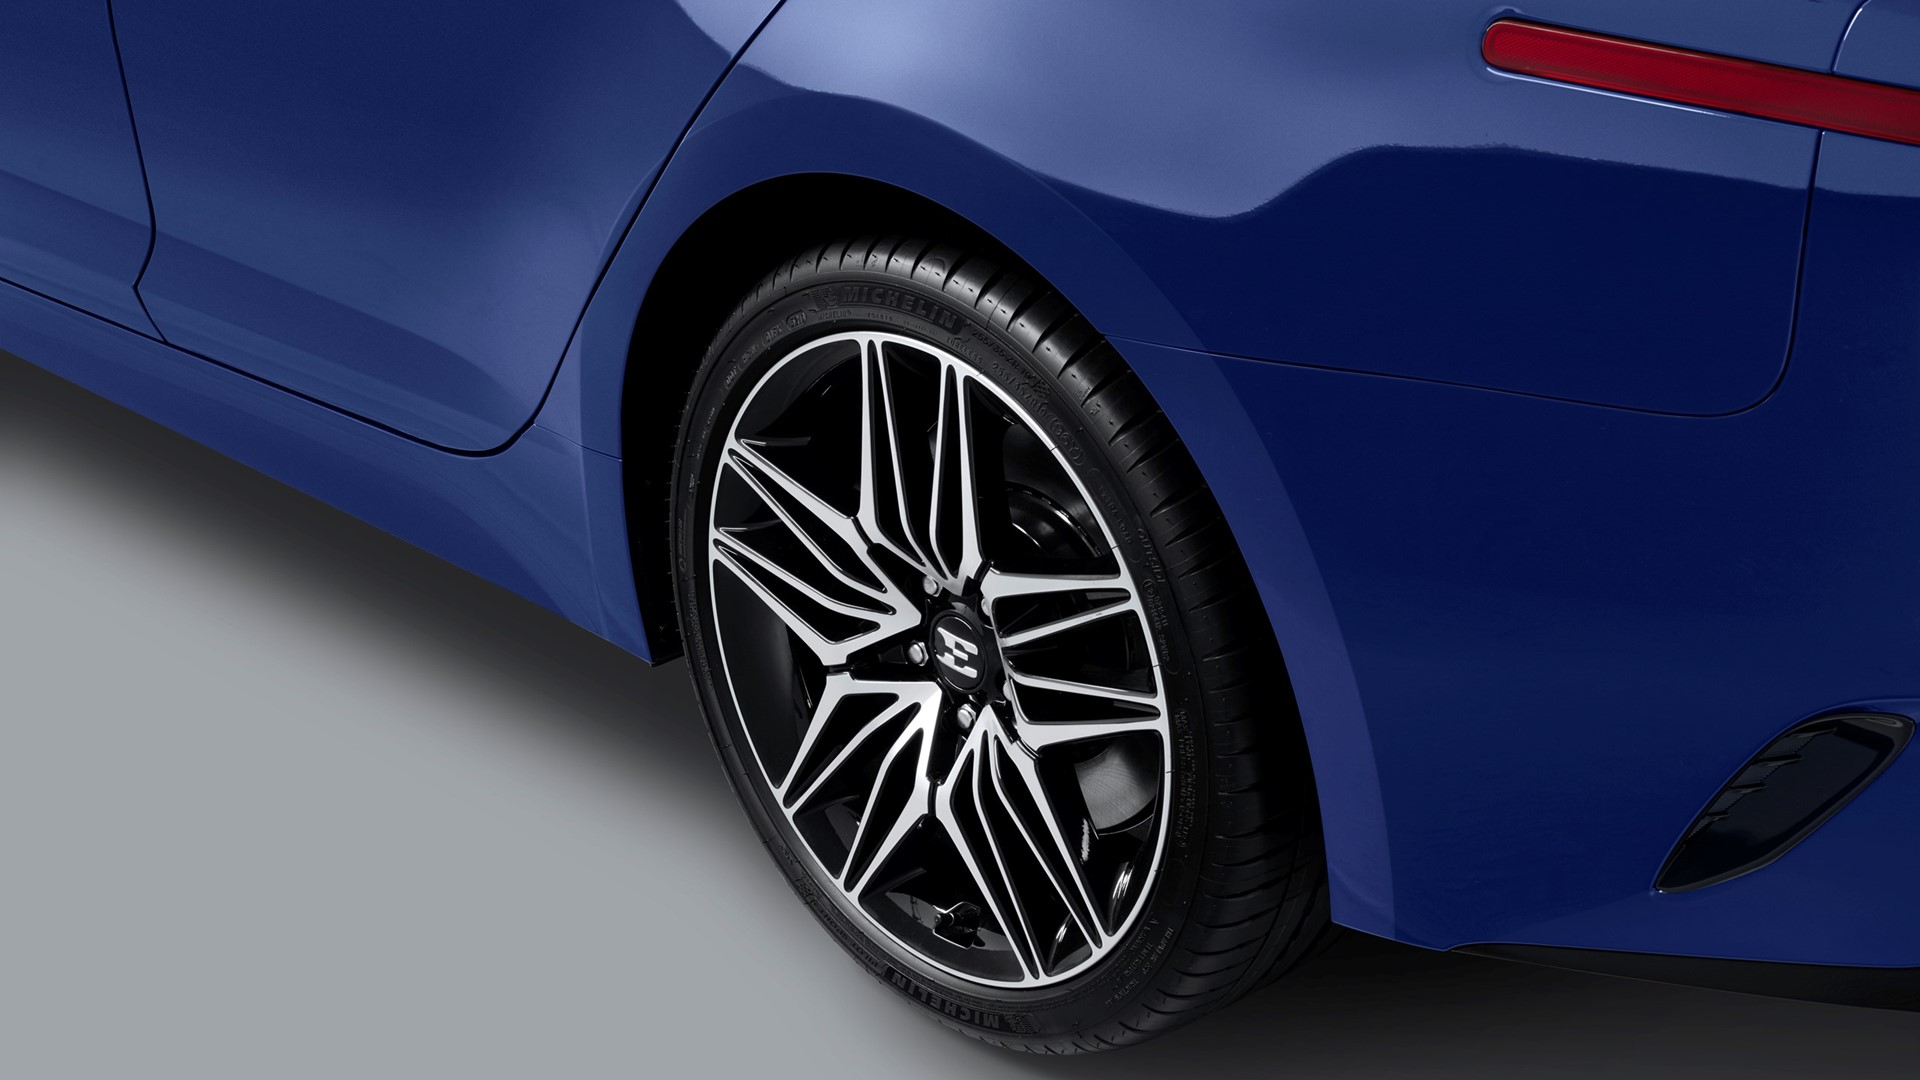 More tech, power and safety for upgraded Kia Stinger - Image 4